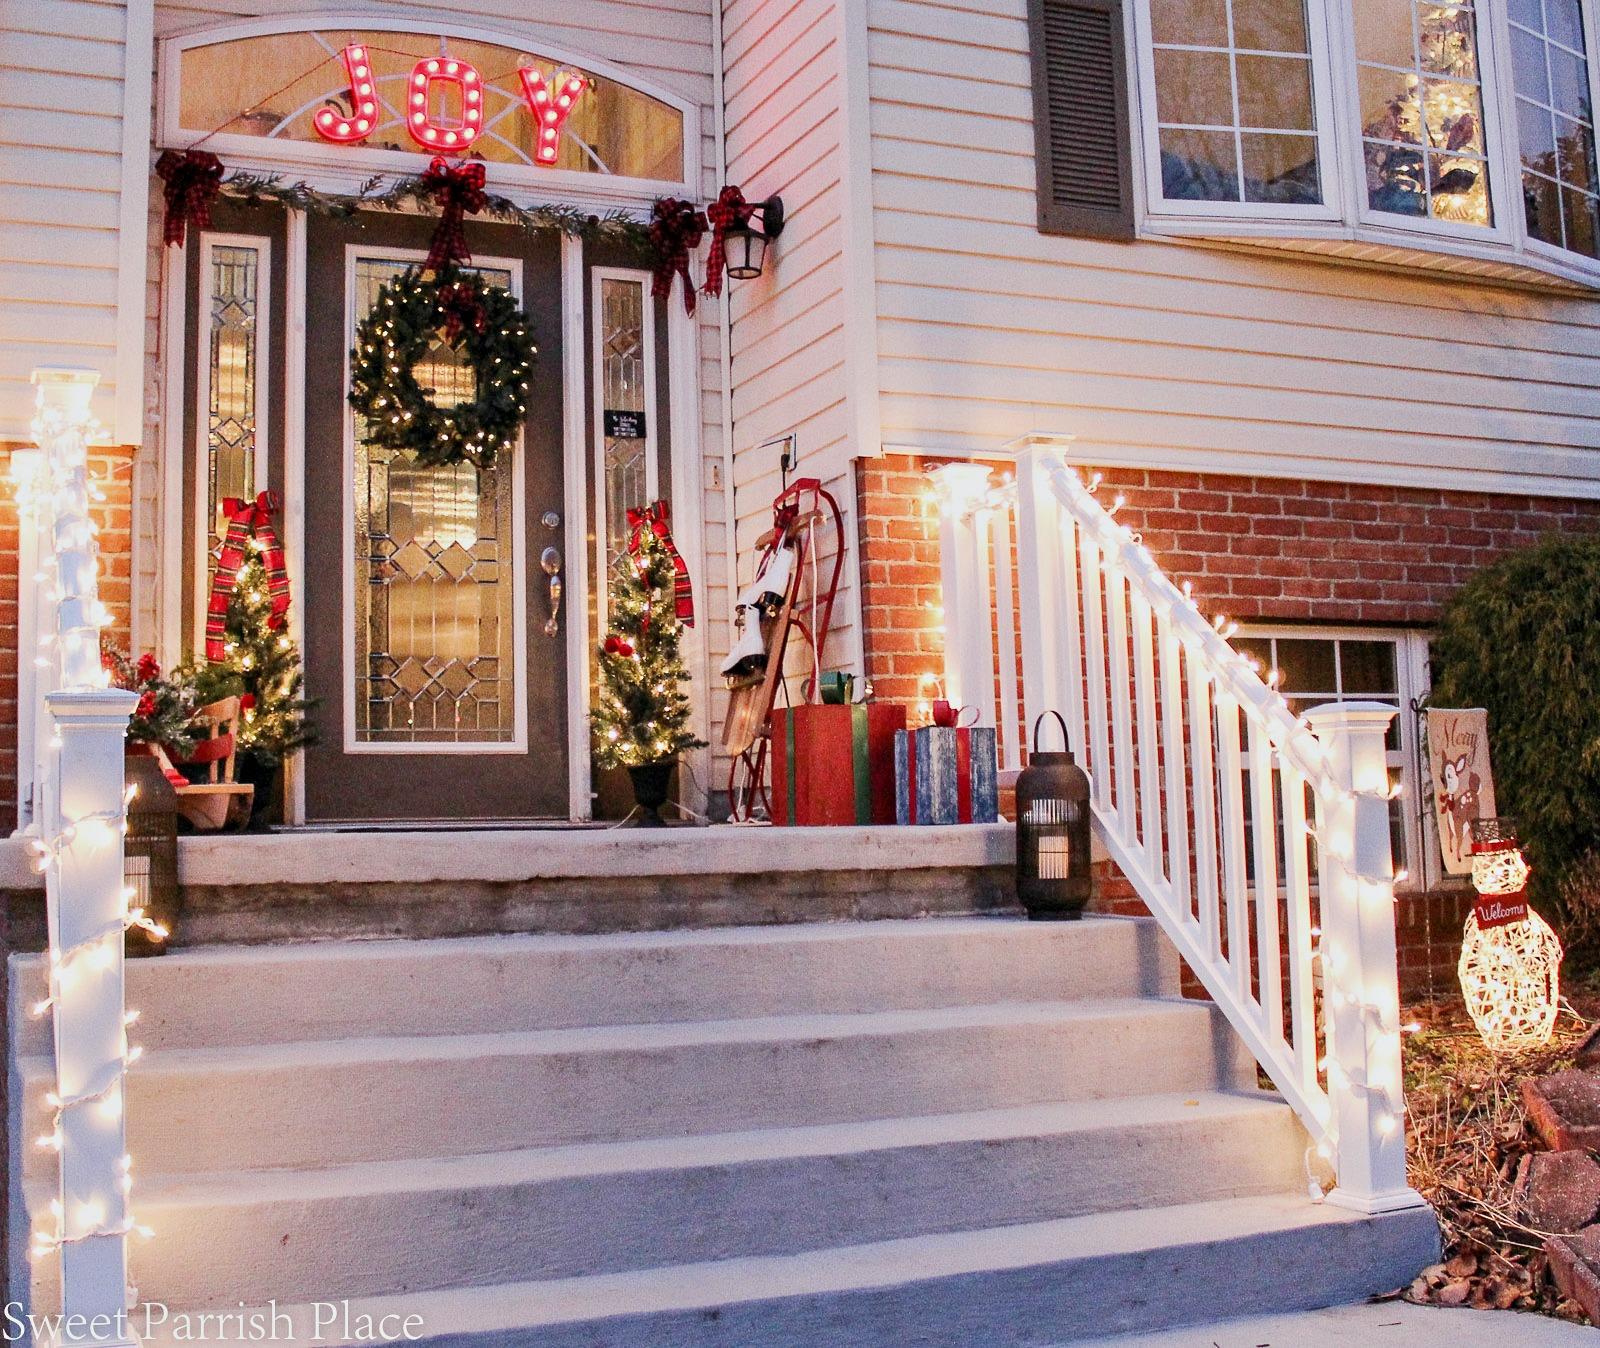 Christmas decor for the front stoop